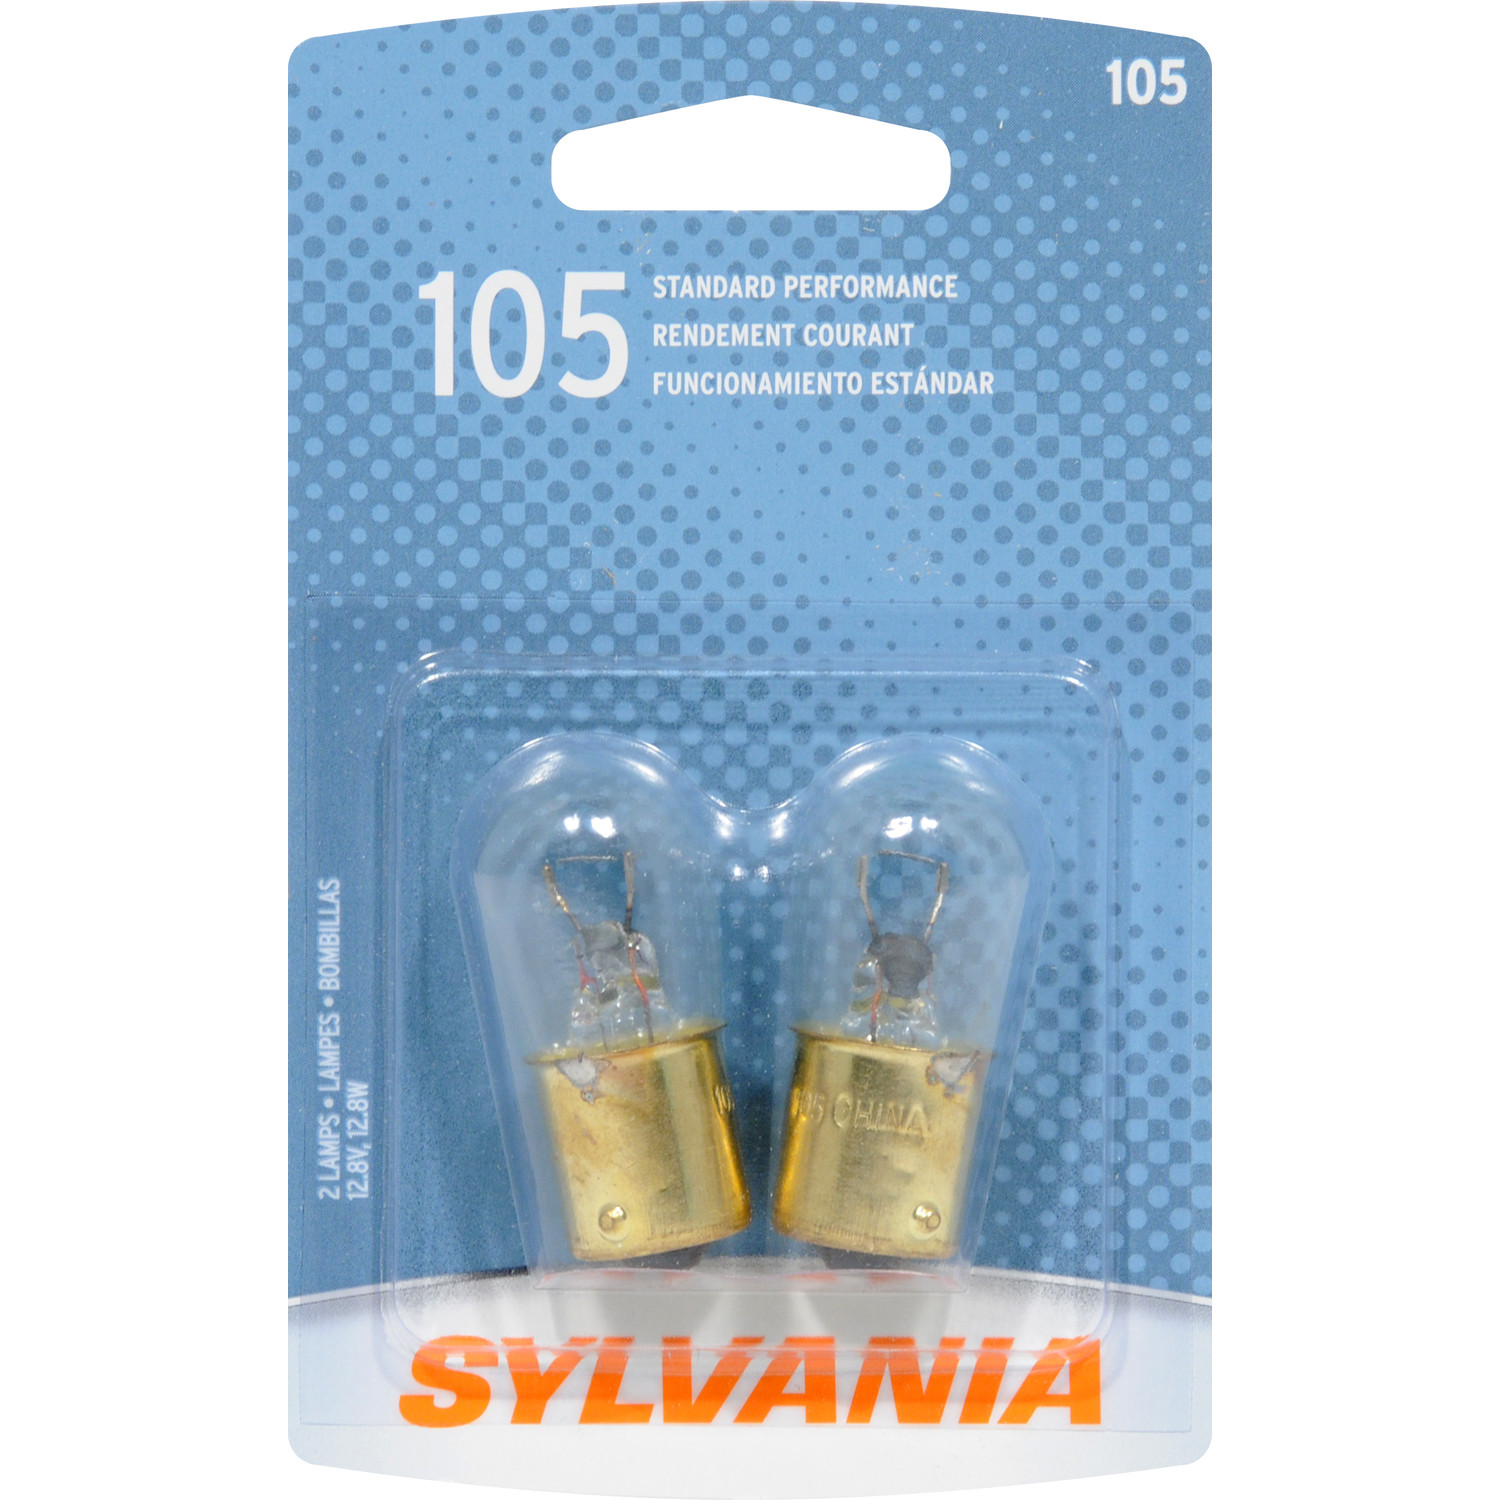 SYLVANIA RETAIL PACKS - Blister Pack Twin Trunk or Cargo Area Light - SYR 105.BP2